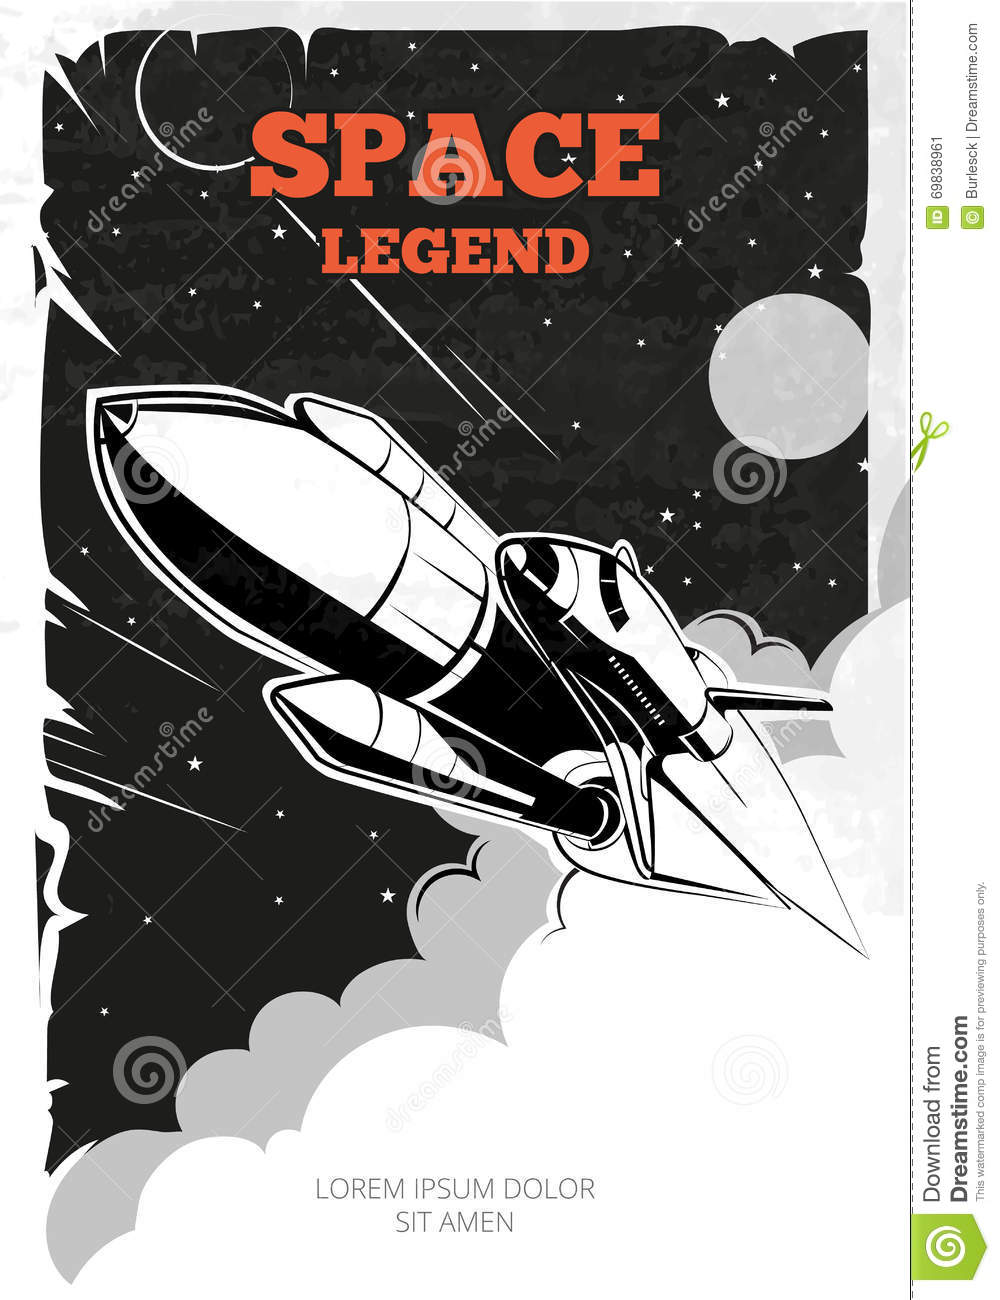 Vintage space vector poster with shuttle